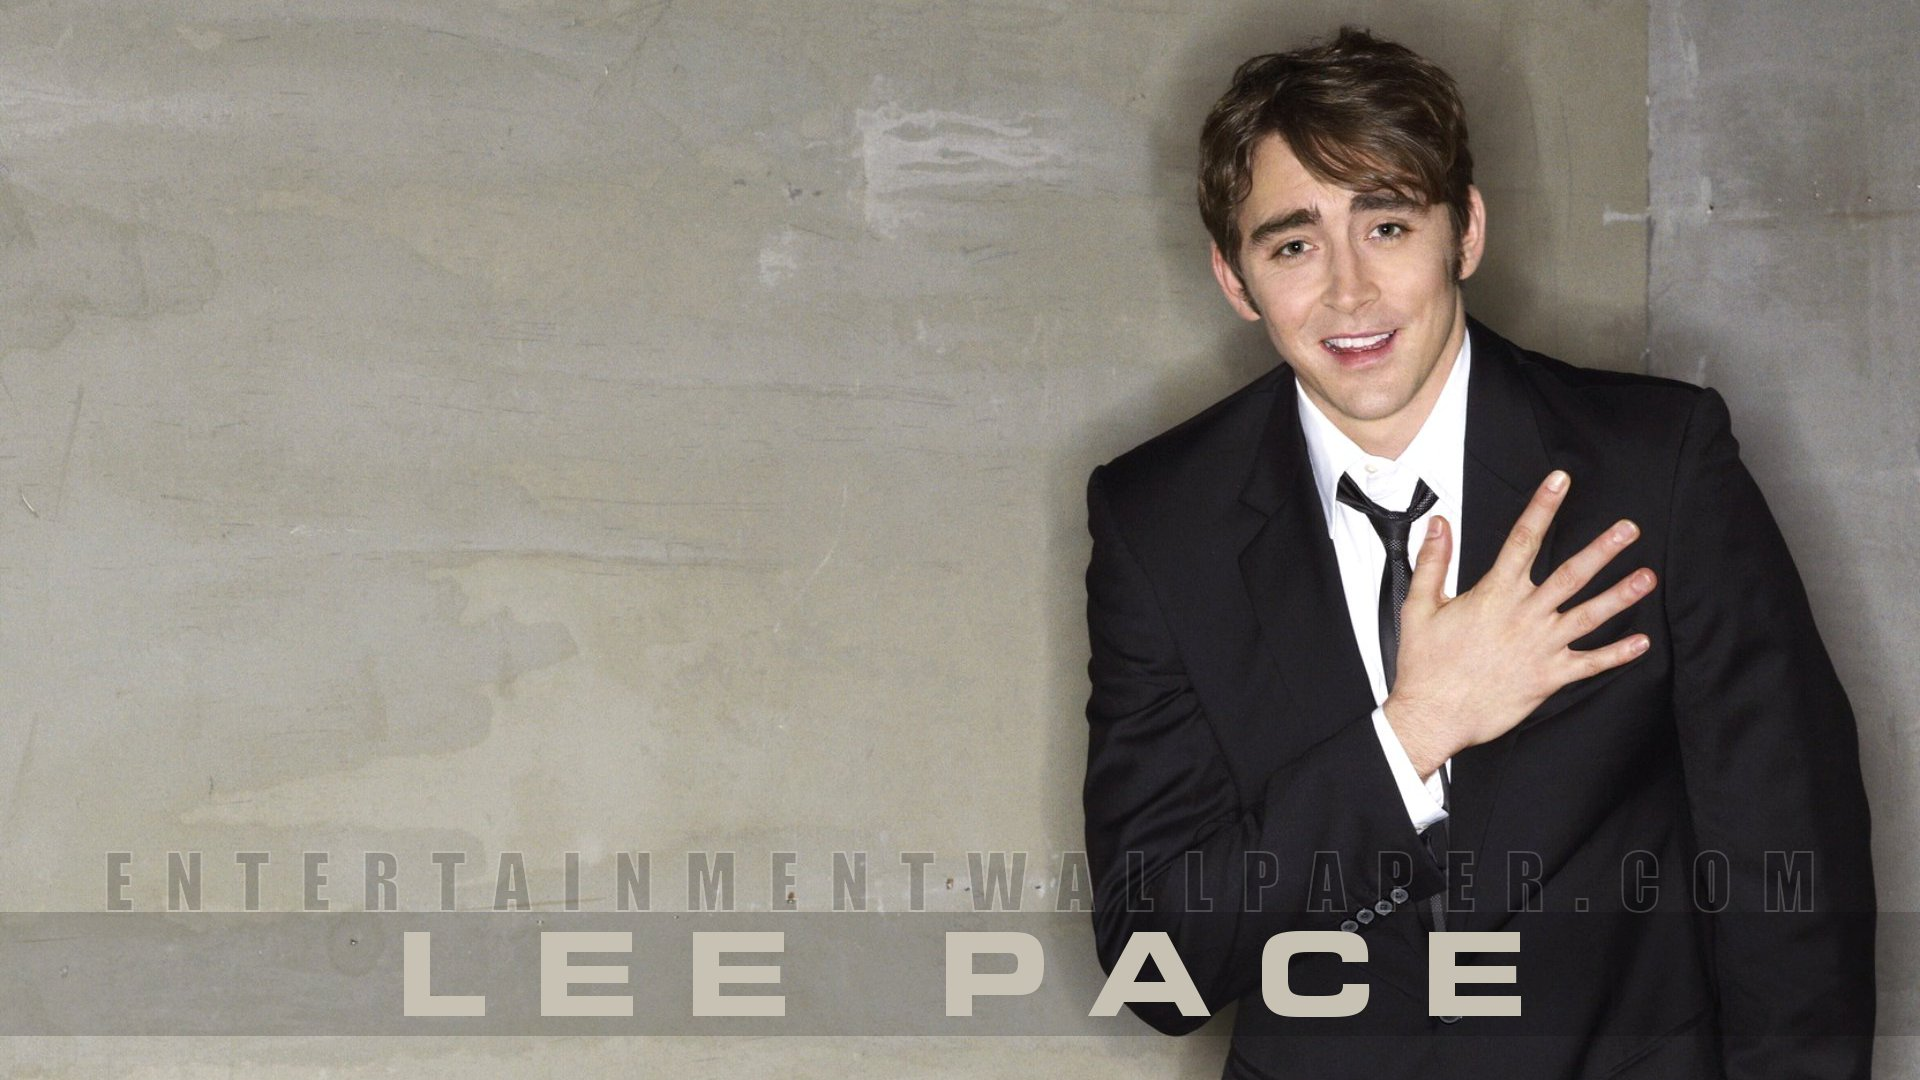 1920x1080 - Lee Pace Wallpapers 6